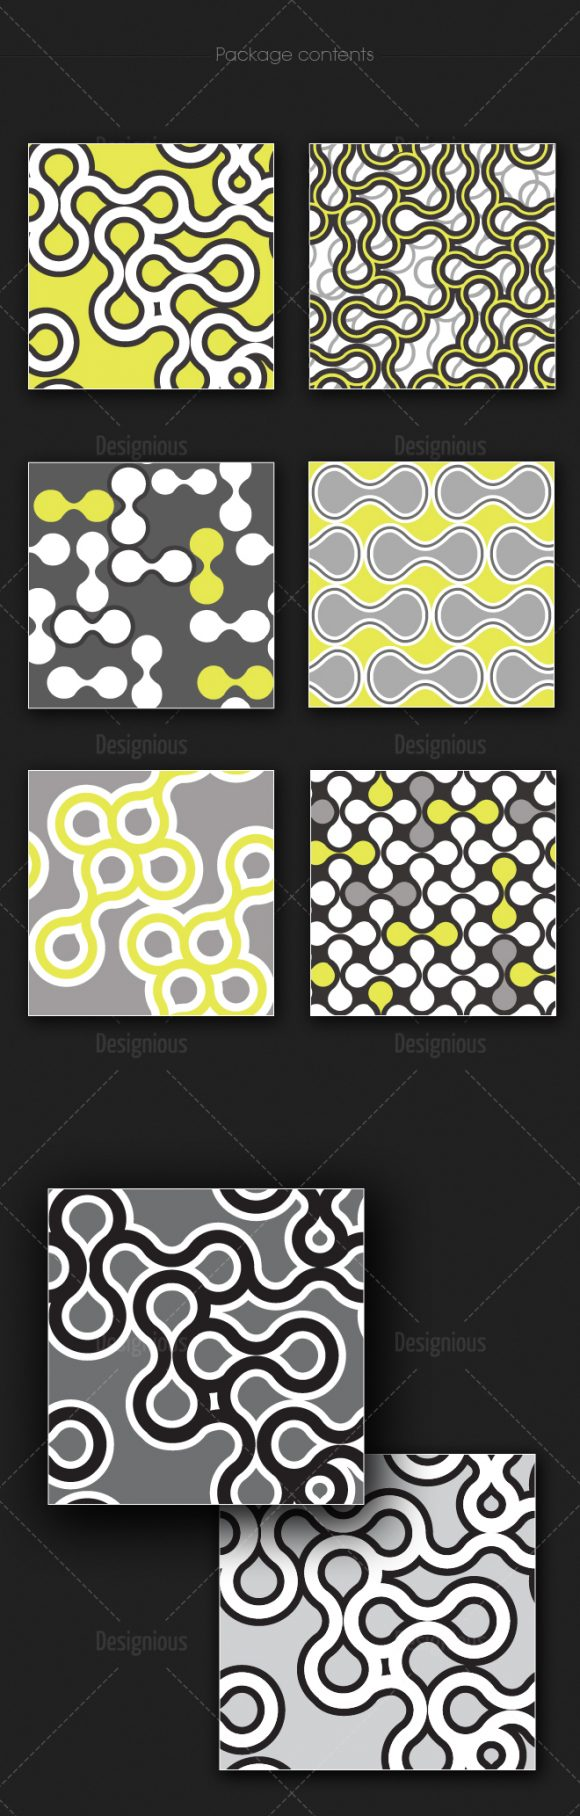 Seamless Patterns Vector Pack 179 products designious vector seamless 179 large